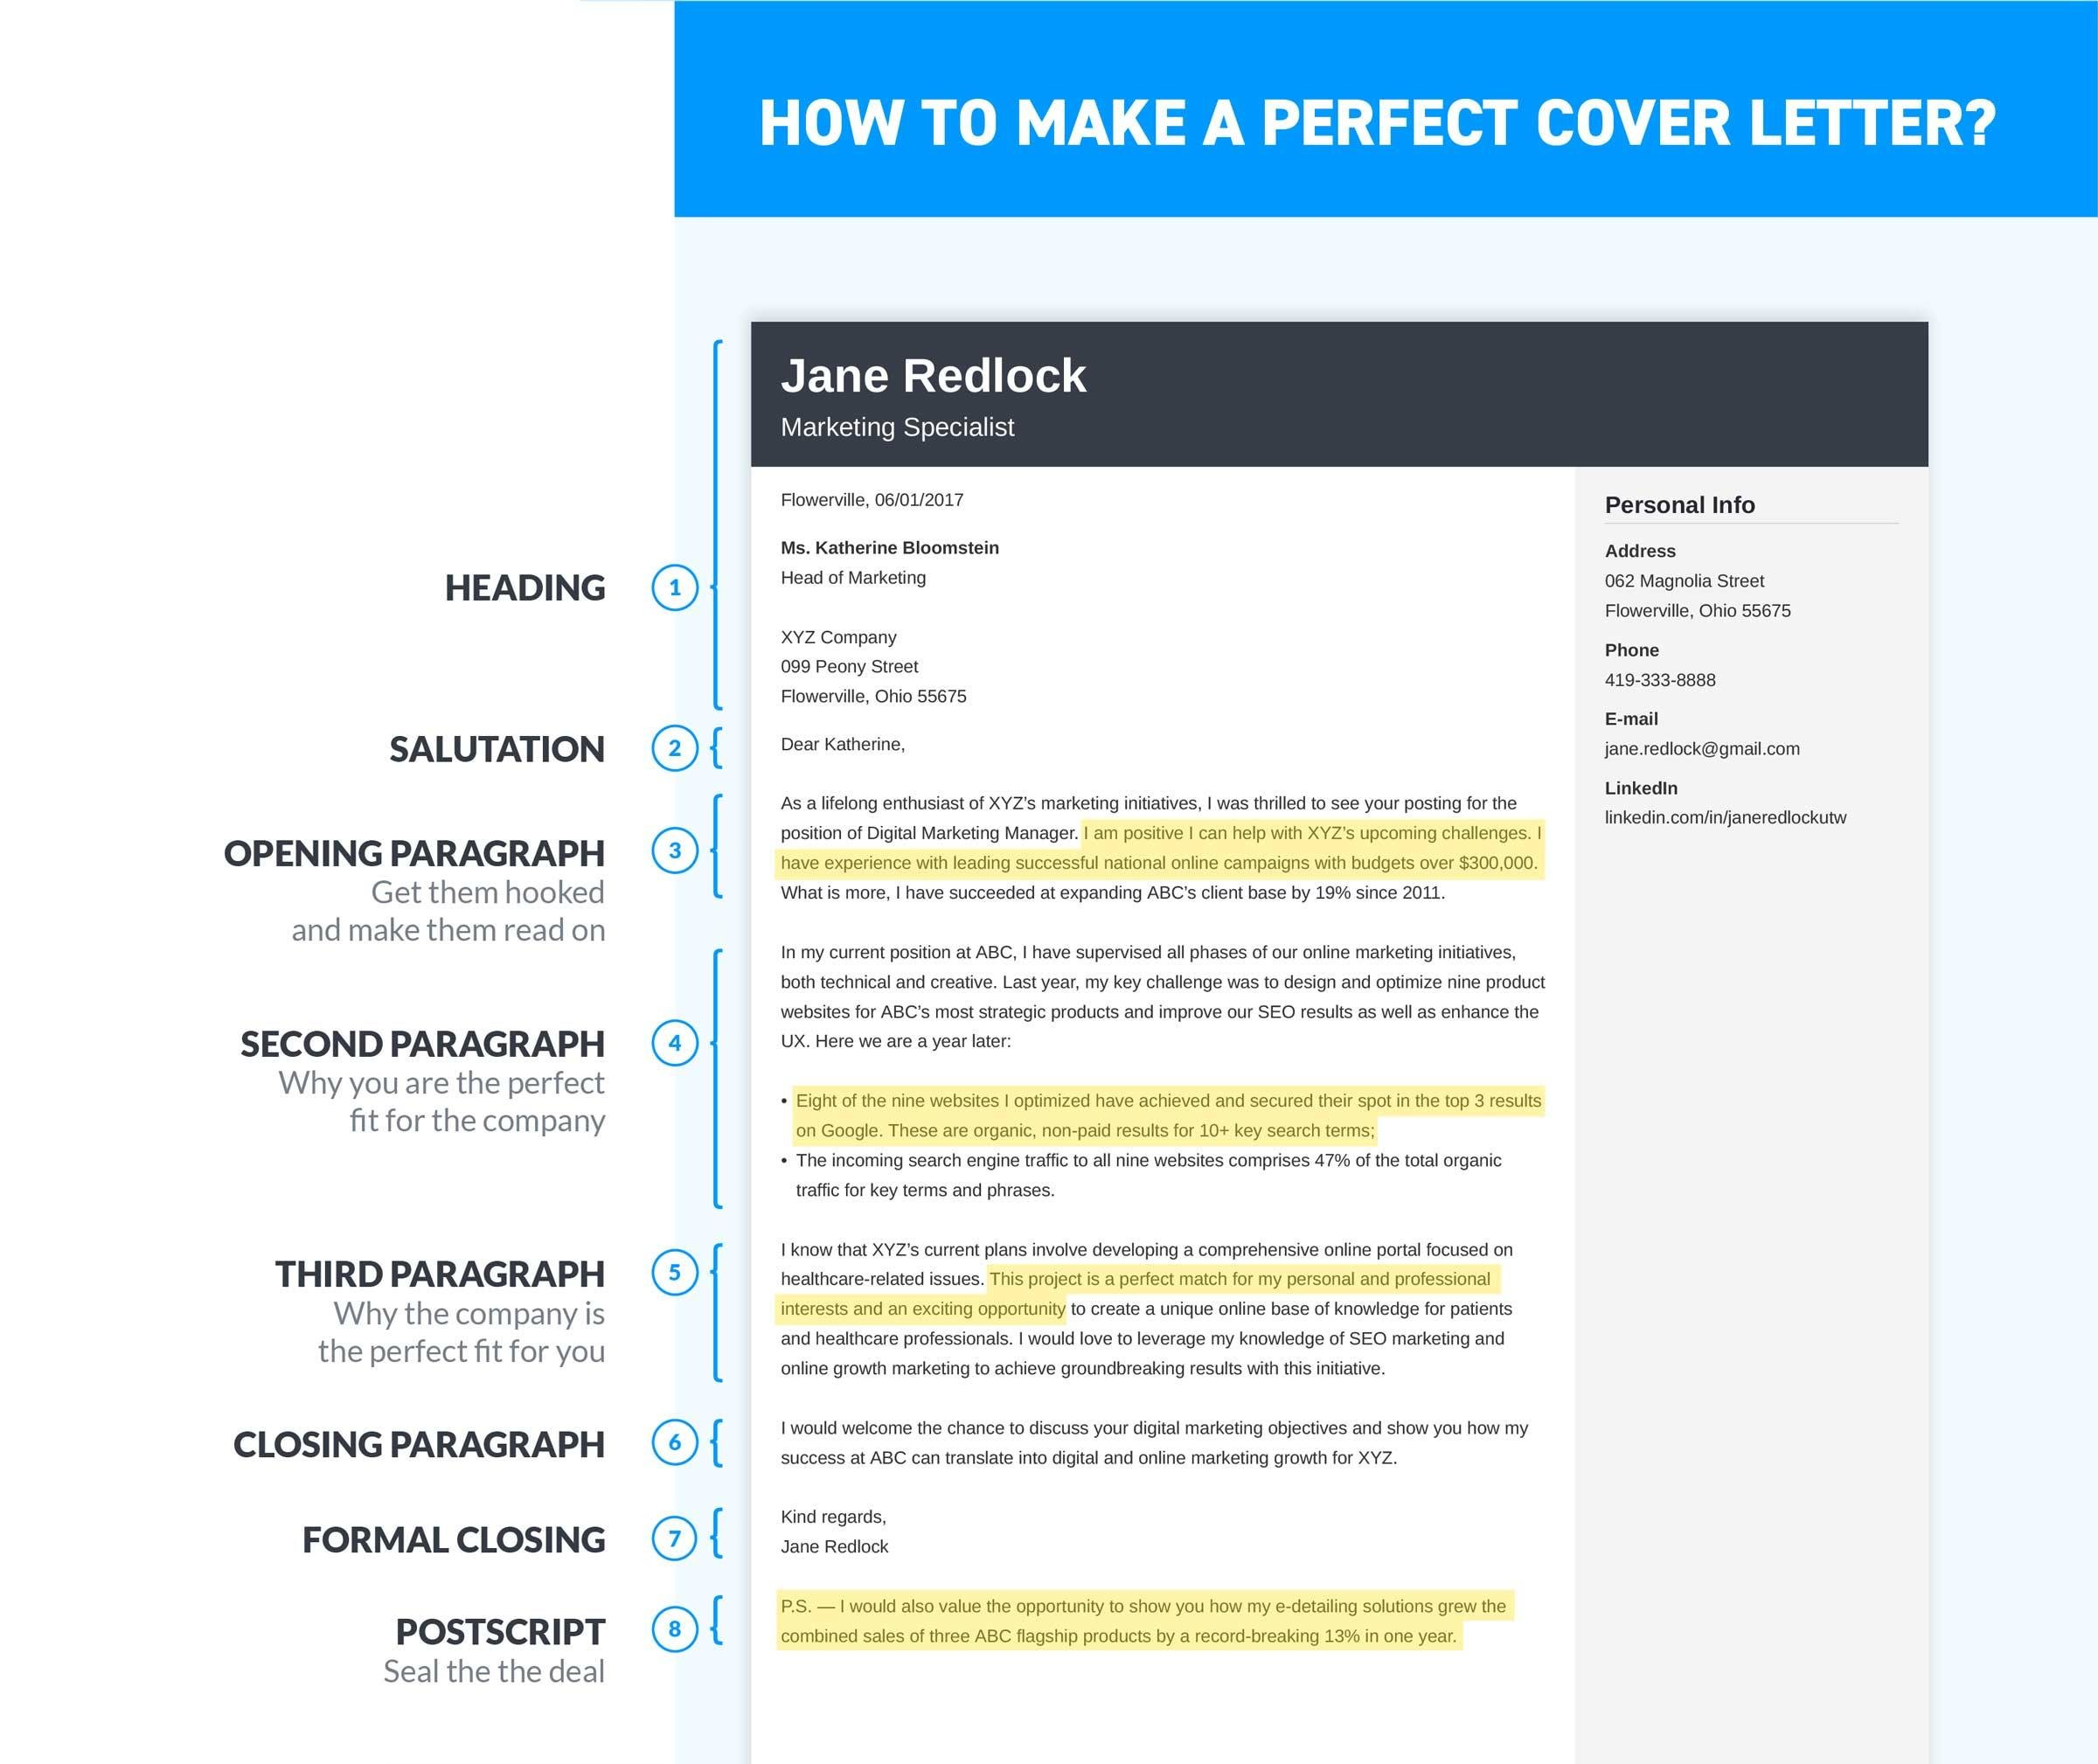 How To Make A Perfect Cover Letter Infographic  Who To Write Cover Letter To